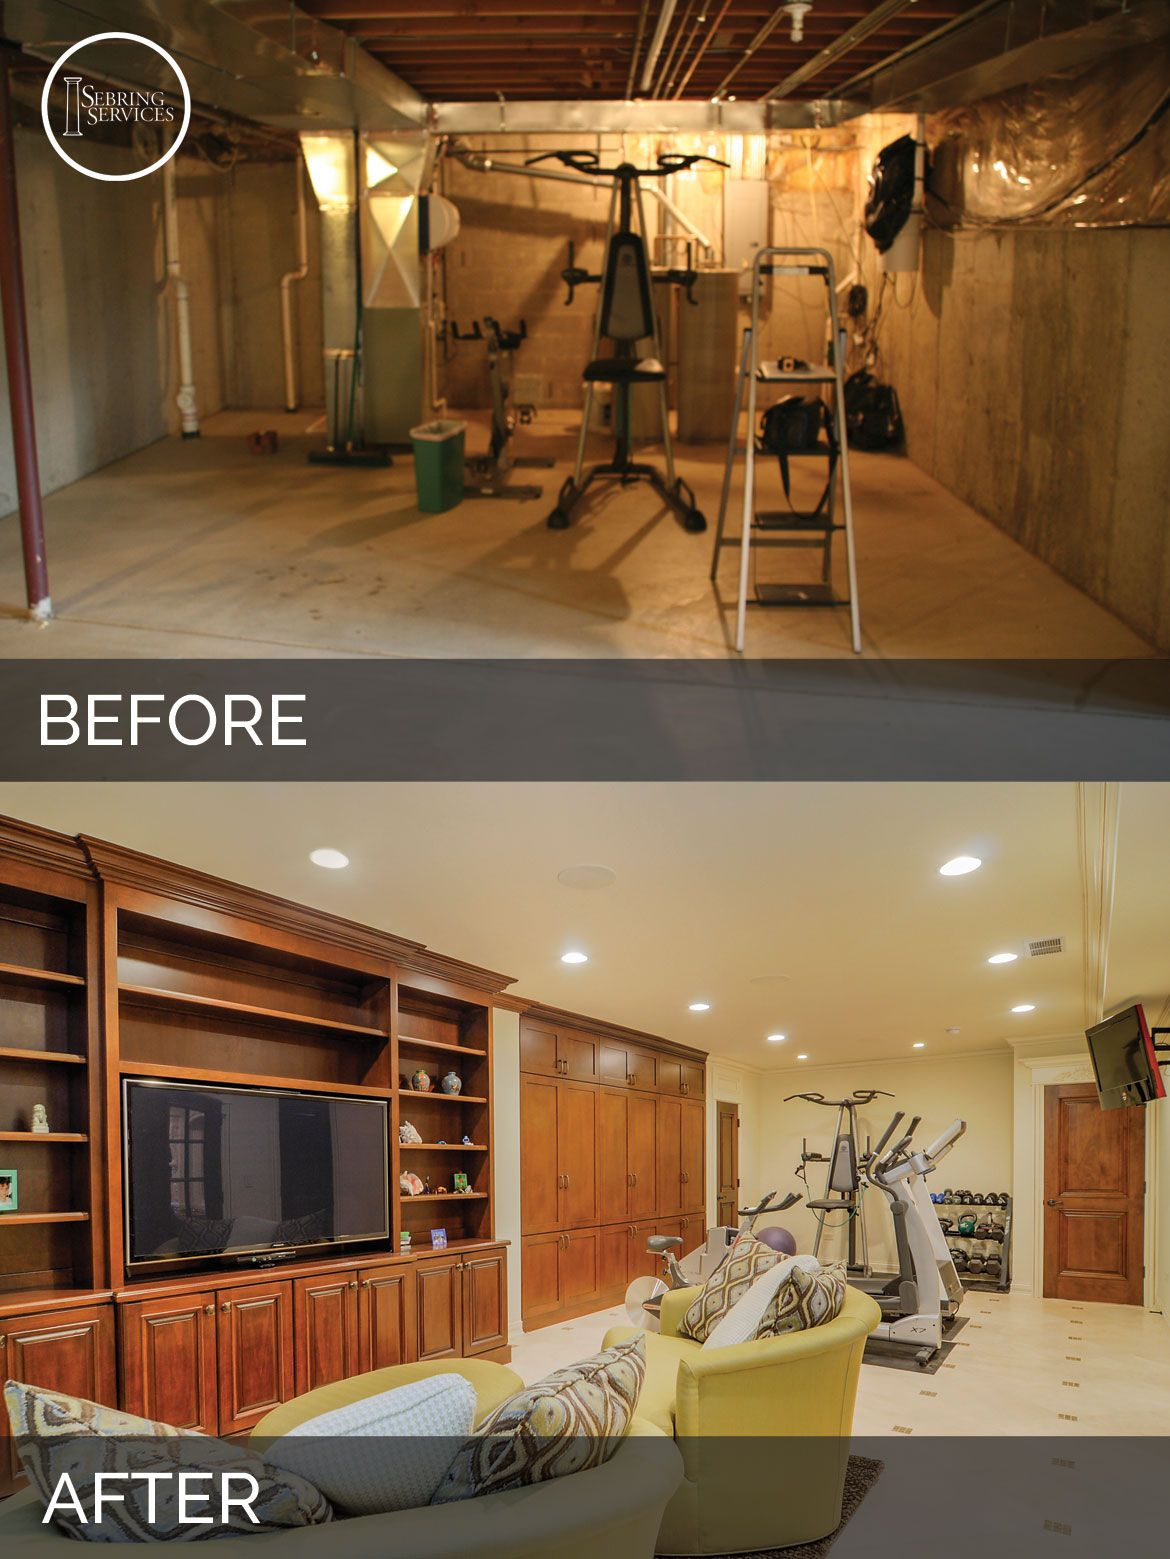 Steve Amp Ann S Basement Before Amp After Pictures Home Design Basement Bedrooms Basement Gym